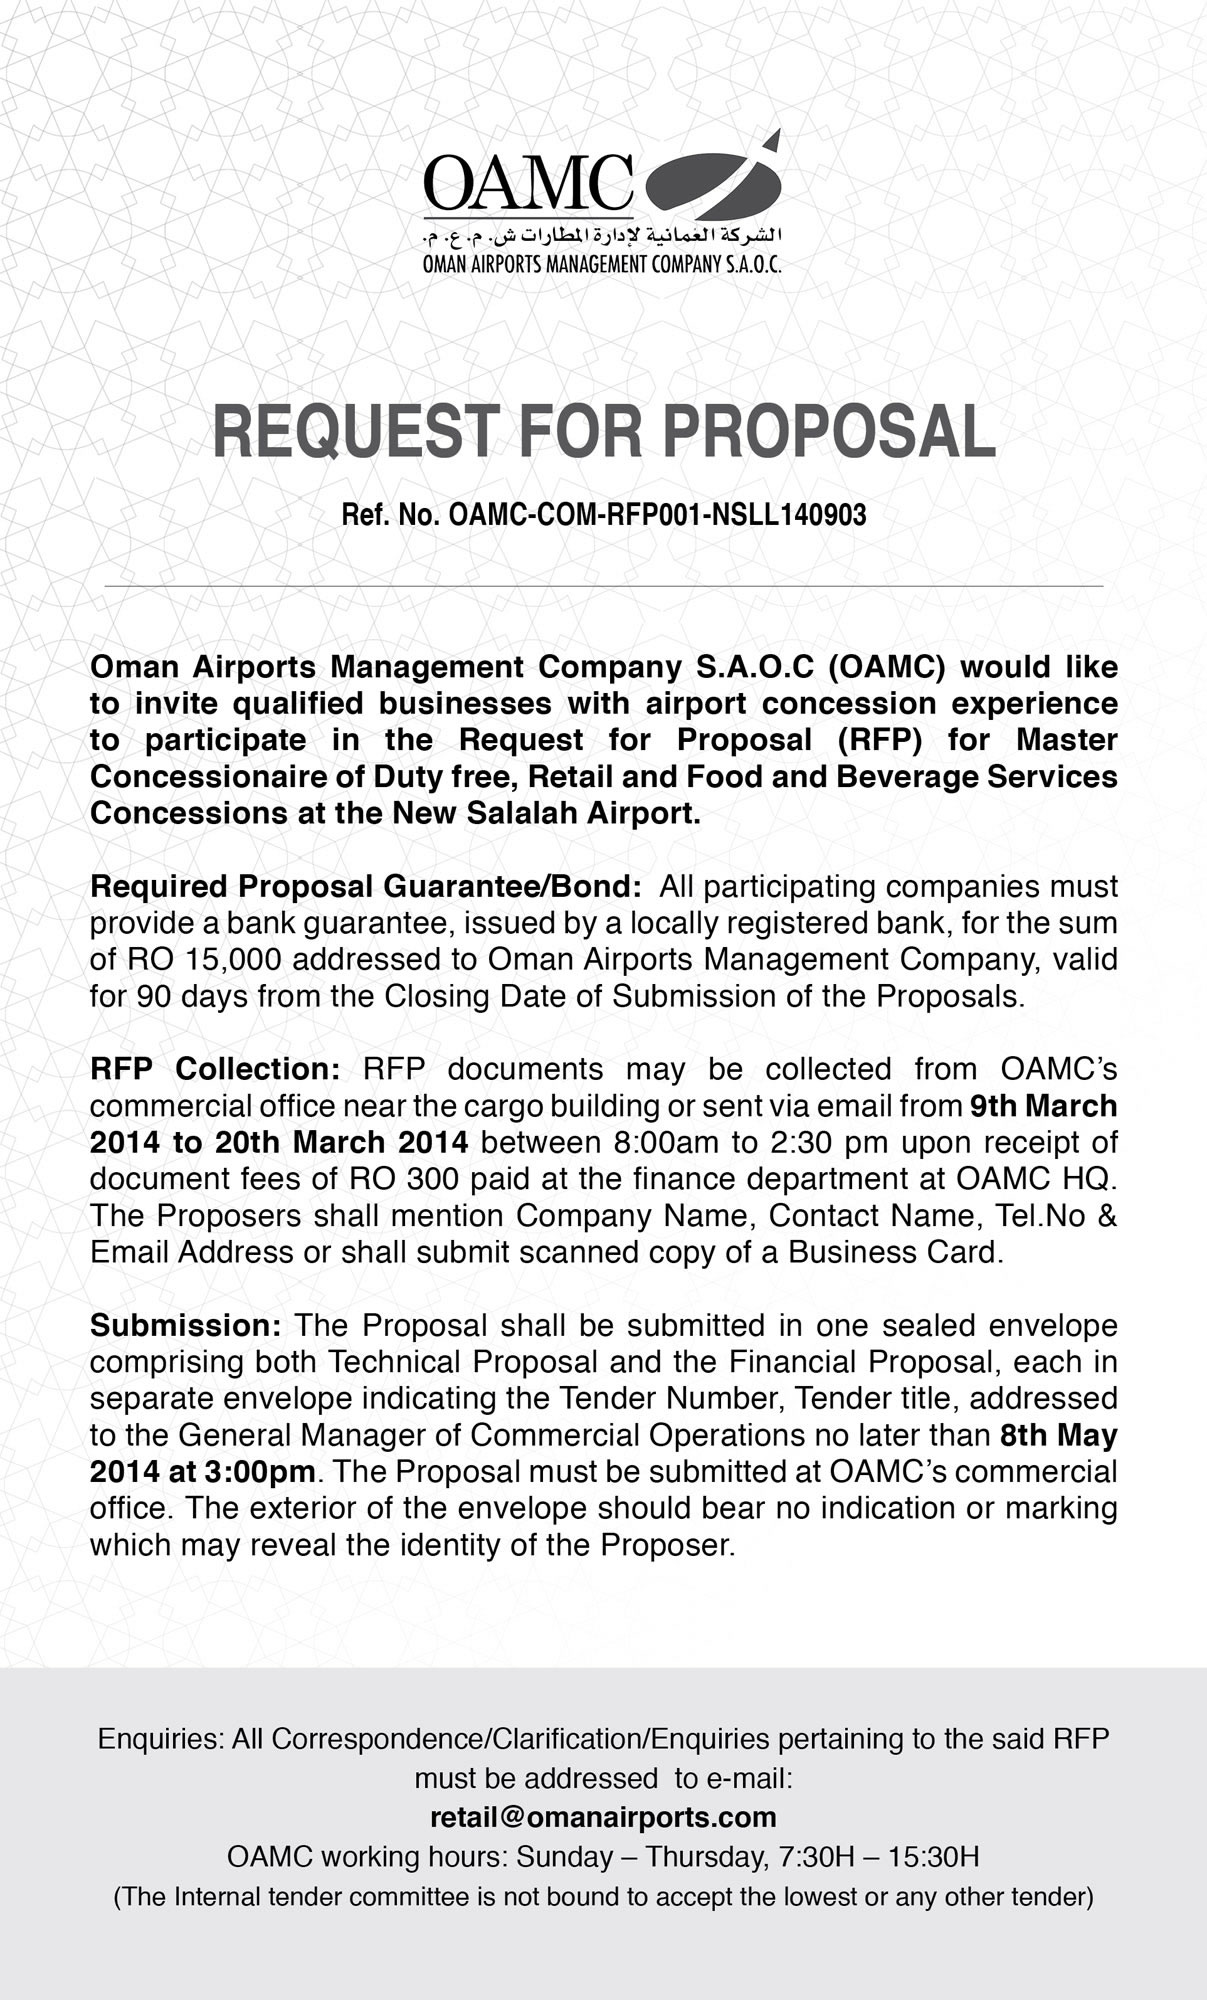 Oman Airports releases RFP for duty free and F&B at Salalah